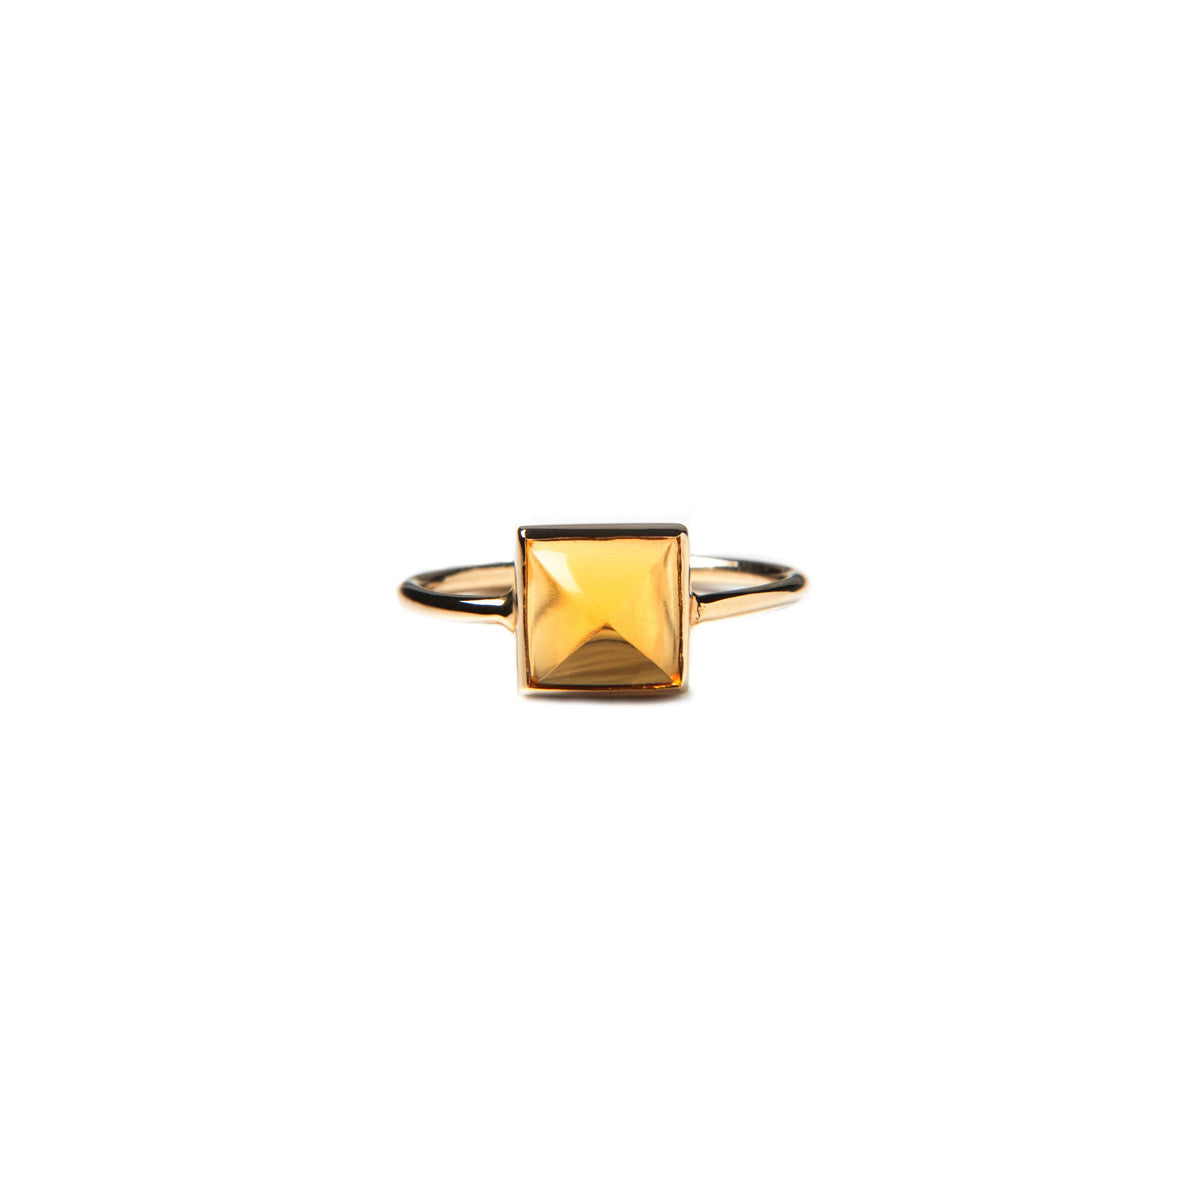 Citrine stud rock ring for women